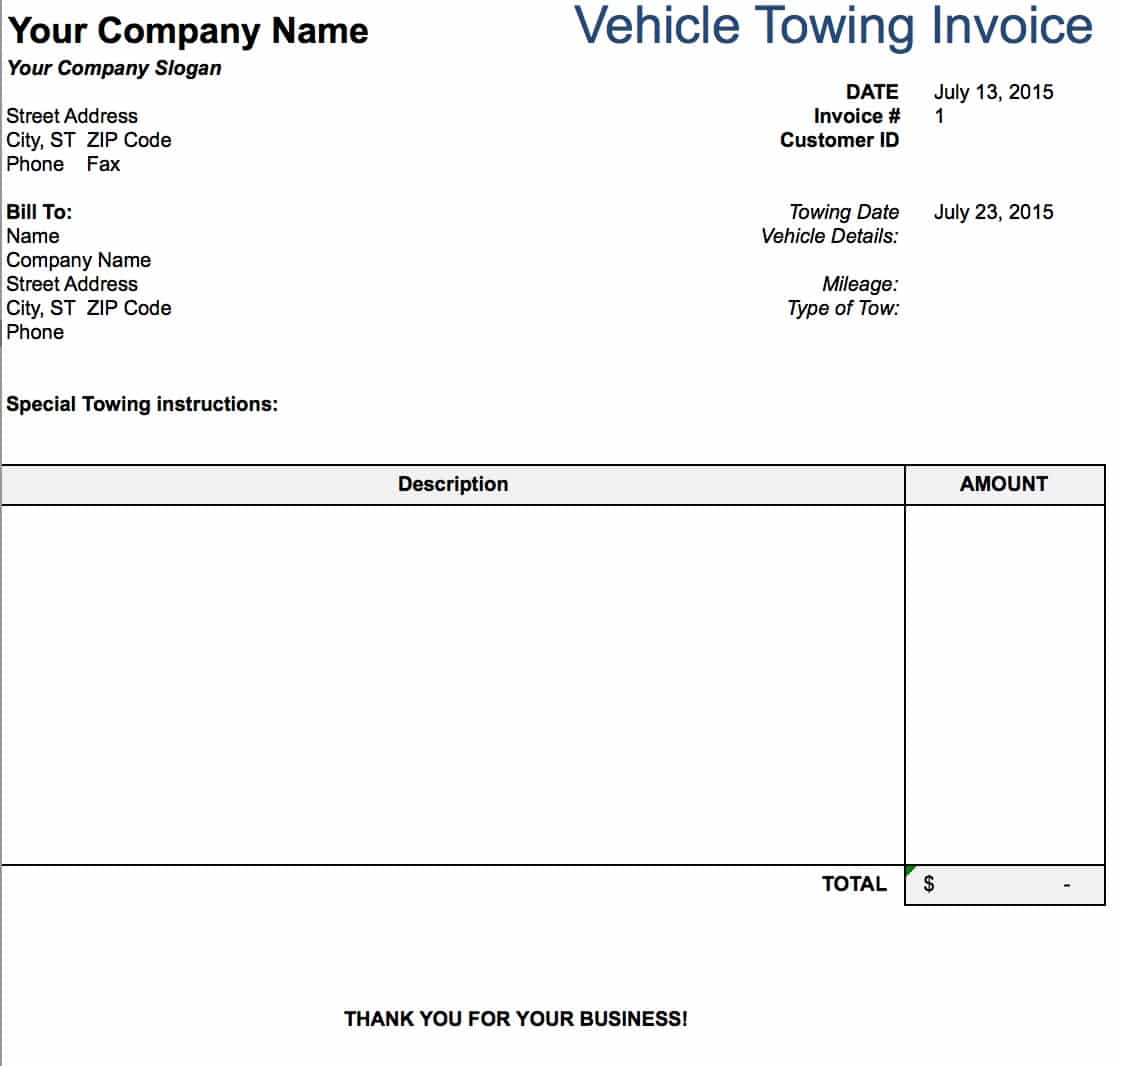 Free Tow Service Invoice Template Excel PDF Word Doc - Blank invoice word document for service business